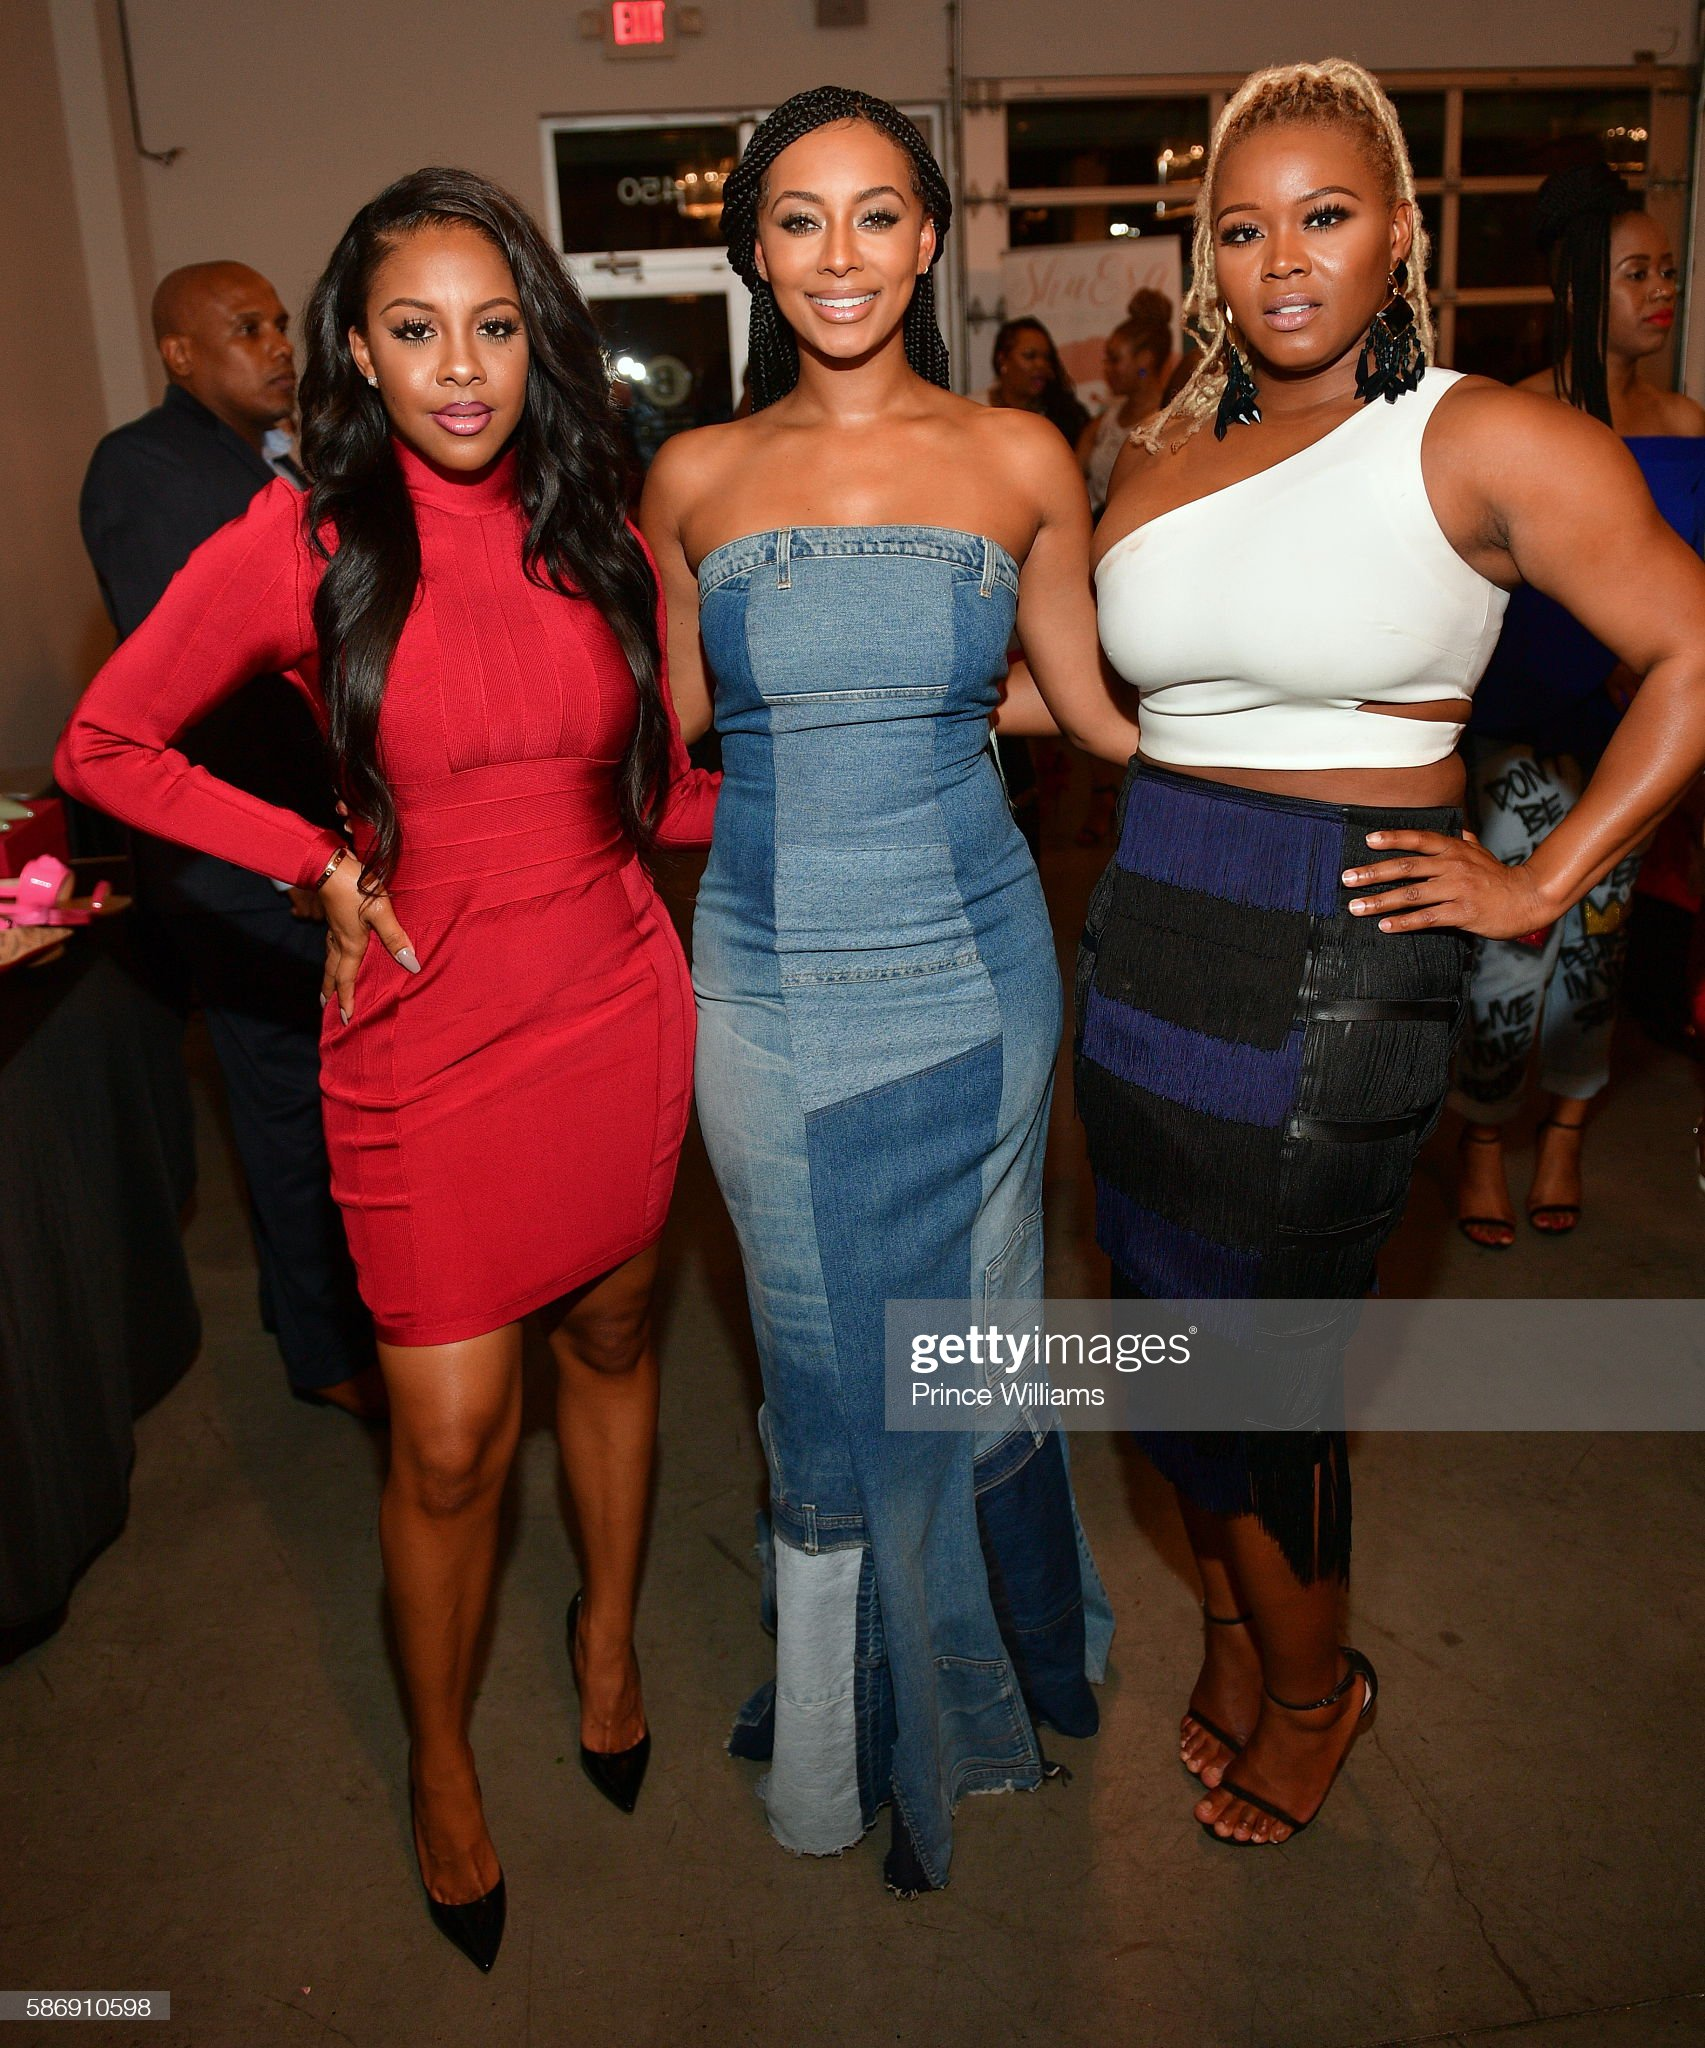 ¿Cuánto mide Miss Diddy? - Altura - Real height Miss-diddy-keri-hilson-and-claire-sulmers-attend-cocktails-with-at-b-picture-id586910598?s=2048x2048